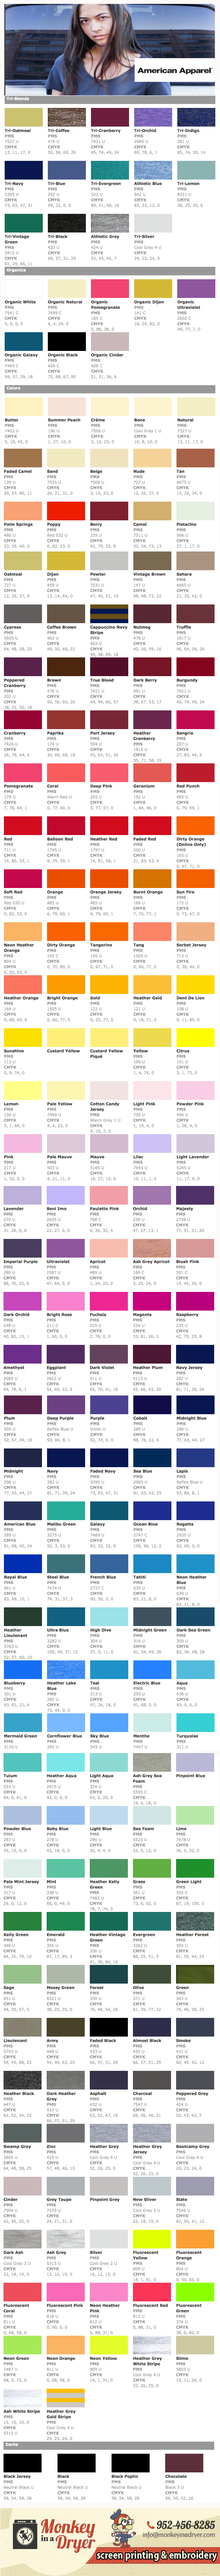 American Apparel Swatch Color Chart